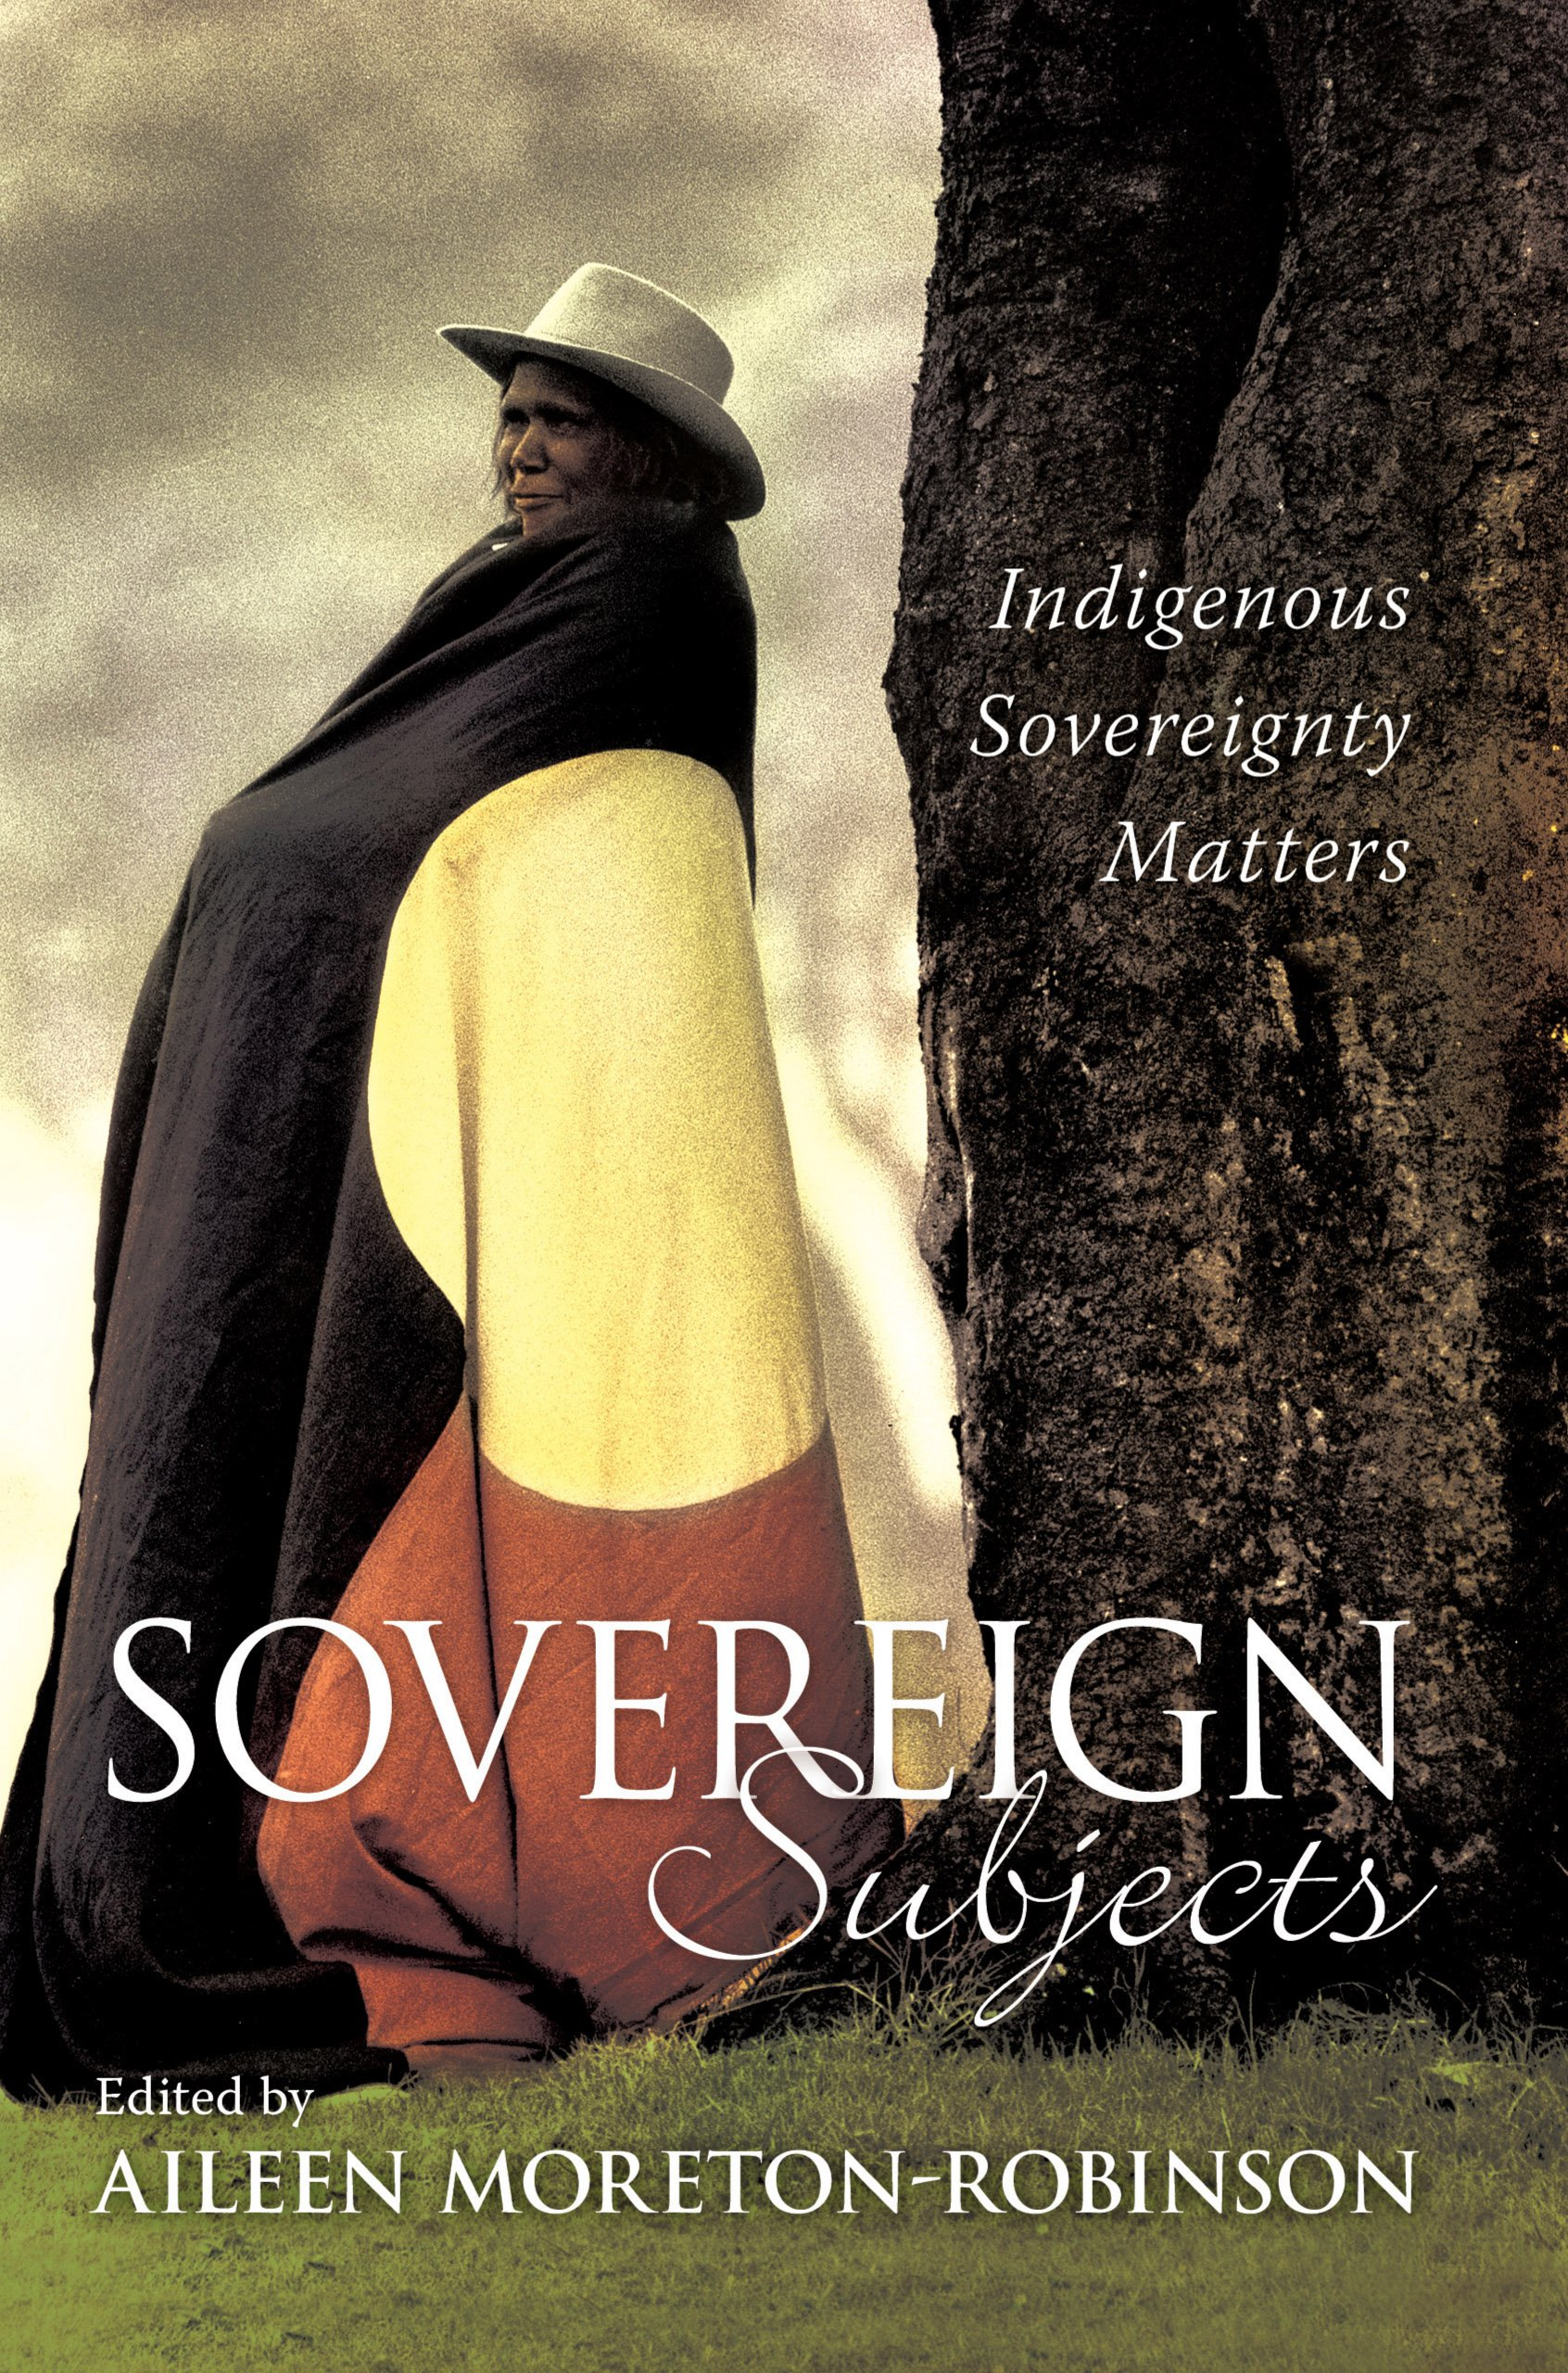 Sovereign Subjects  Indigenous Sovereignty Matters  Cultural Studies